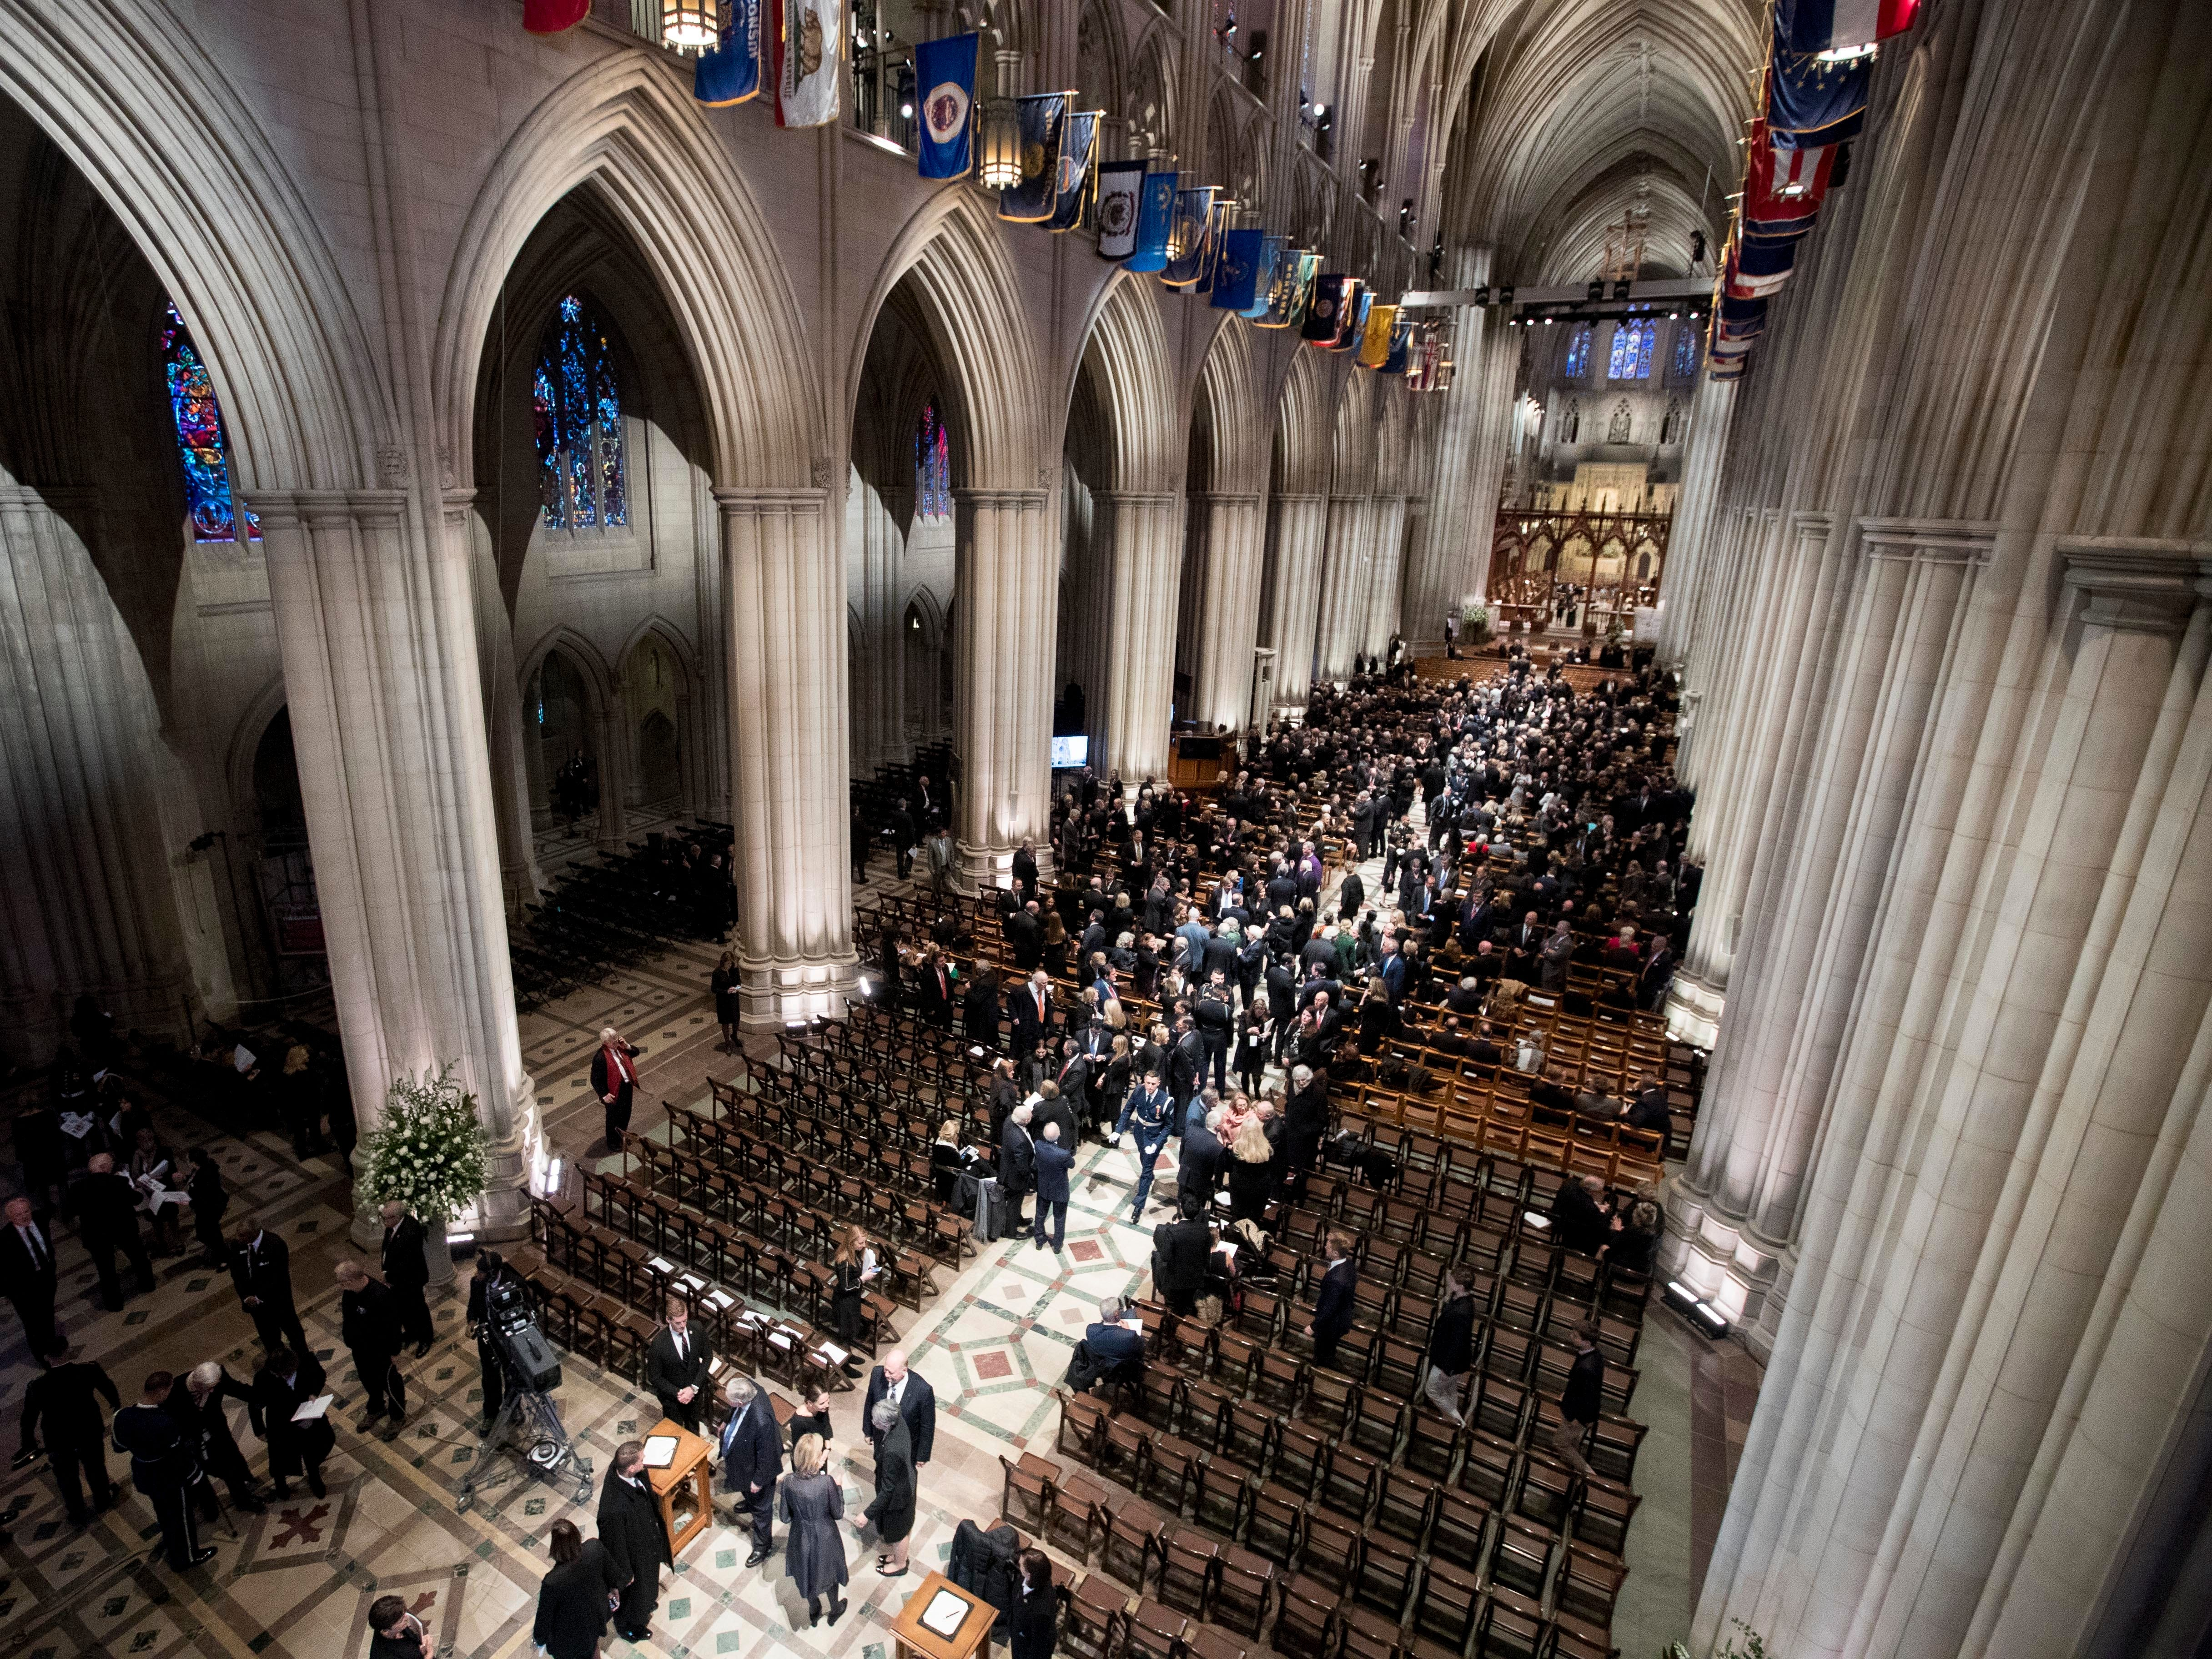 People arrive for a State Funeral for former President George H.W. Bush at the National Cathedral, Wednesday, Dec. 5, 2018, in Washington.